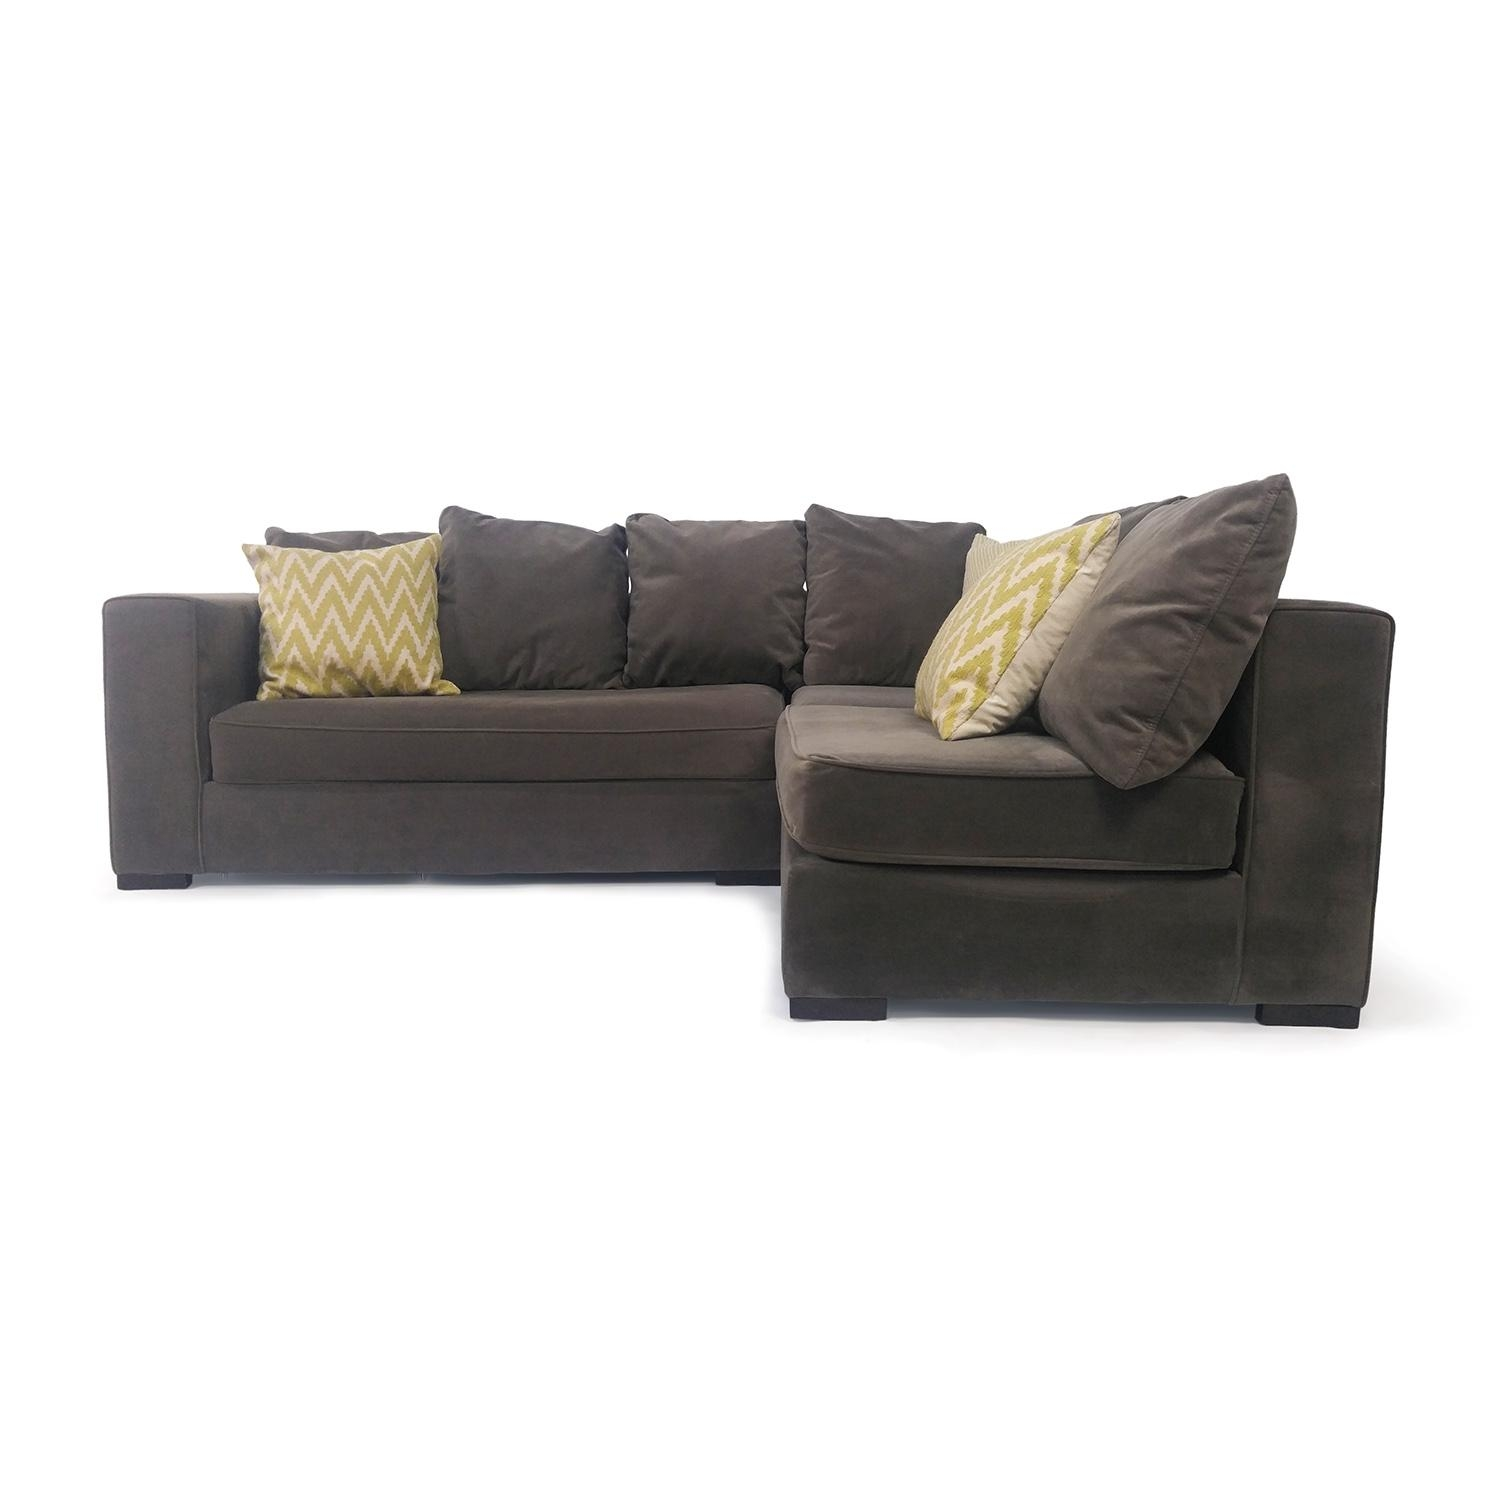 Buy Second Hand Sectionals For $500 $1000 Pertaining To West Elm Sectionals (Image 3 of 20)